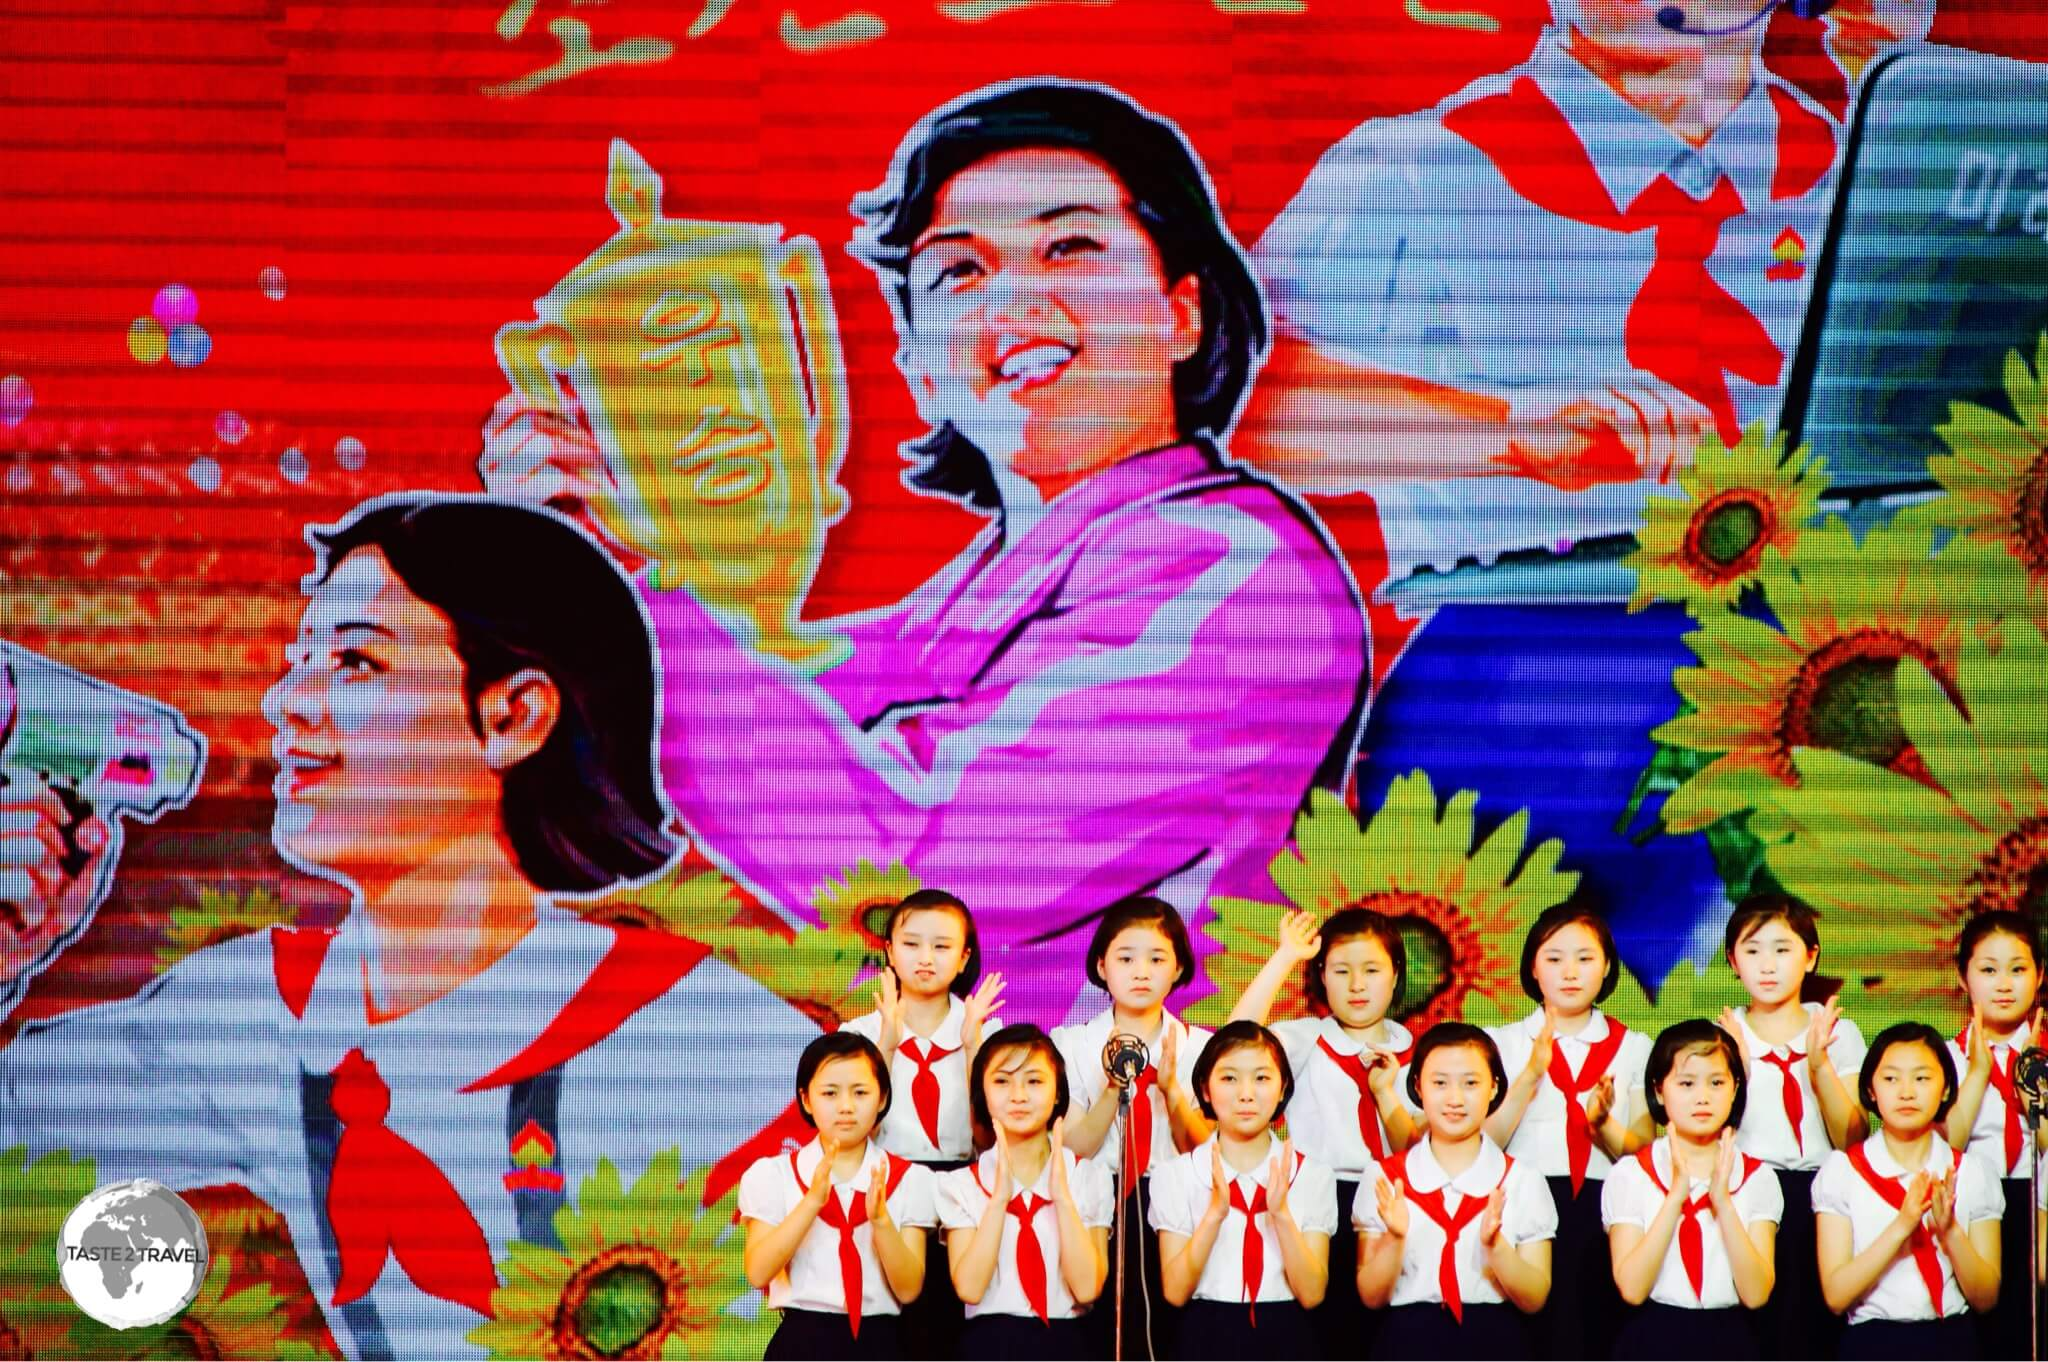 A girls choir performs in front of a propaganda poster.